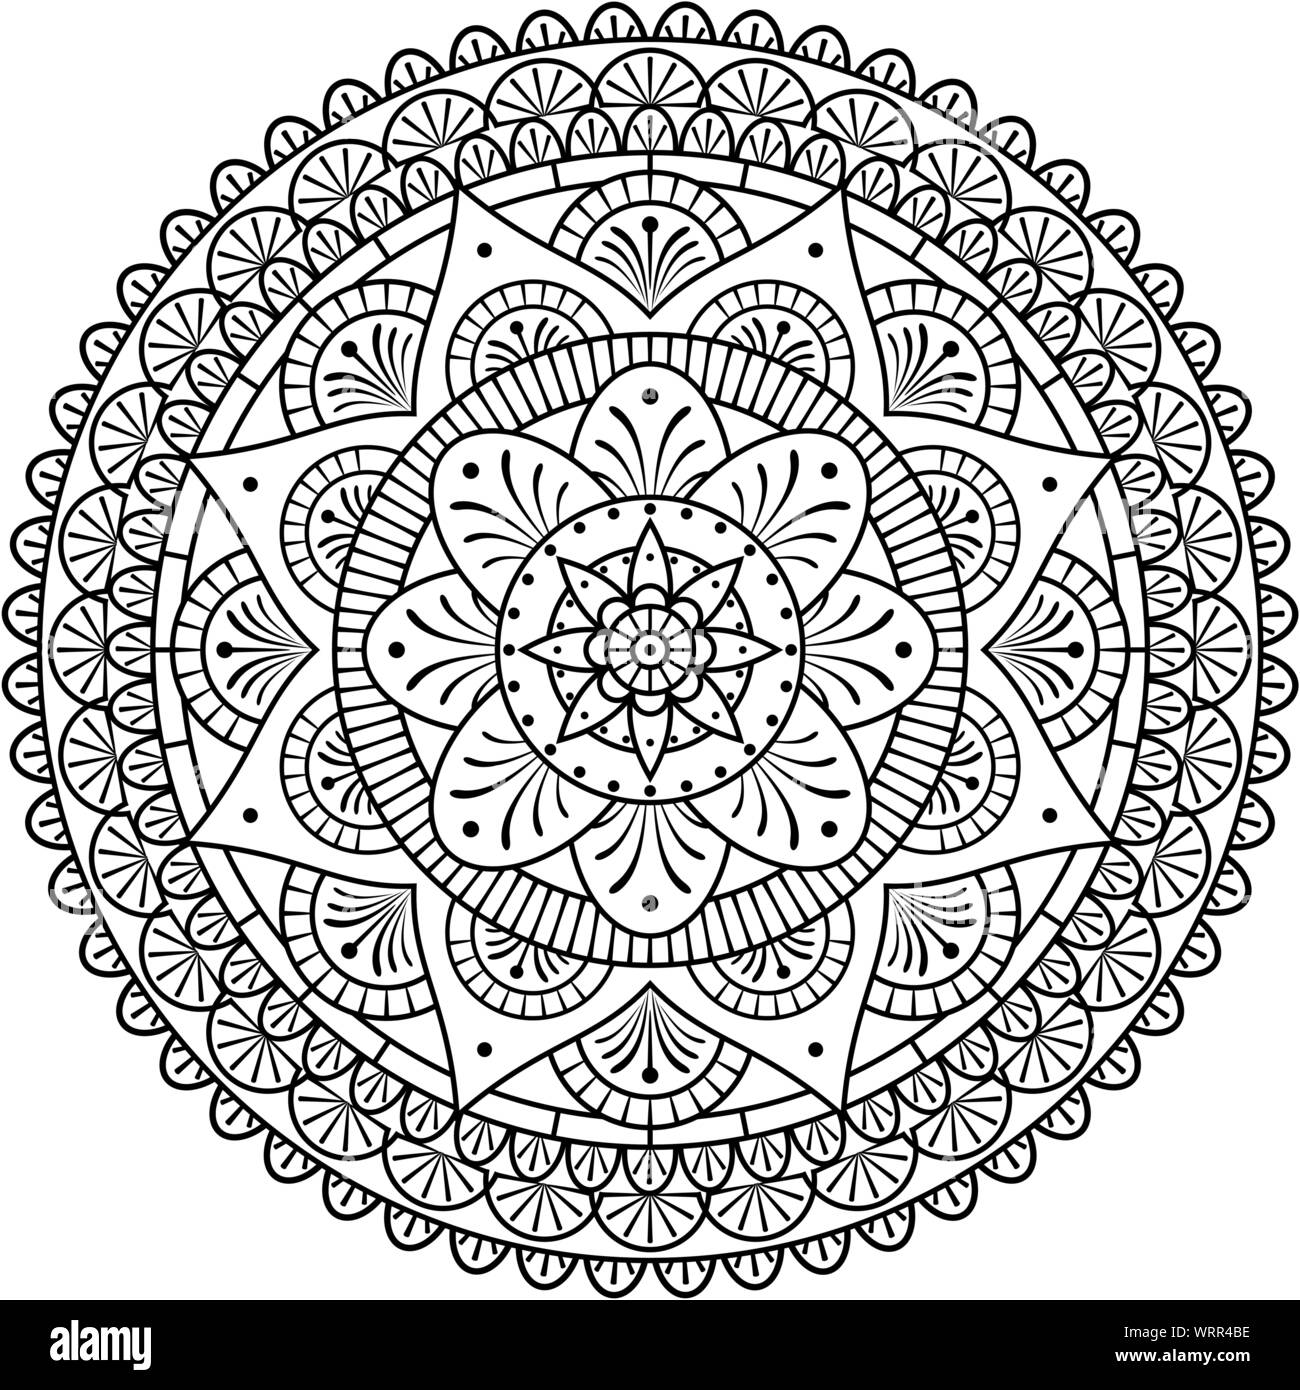 Vector Mandala Art For Coloring With Abstract And